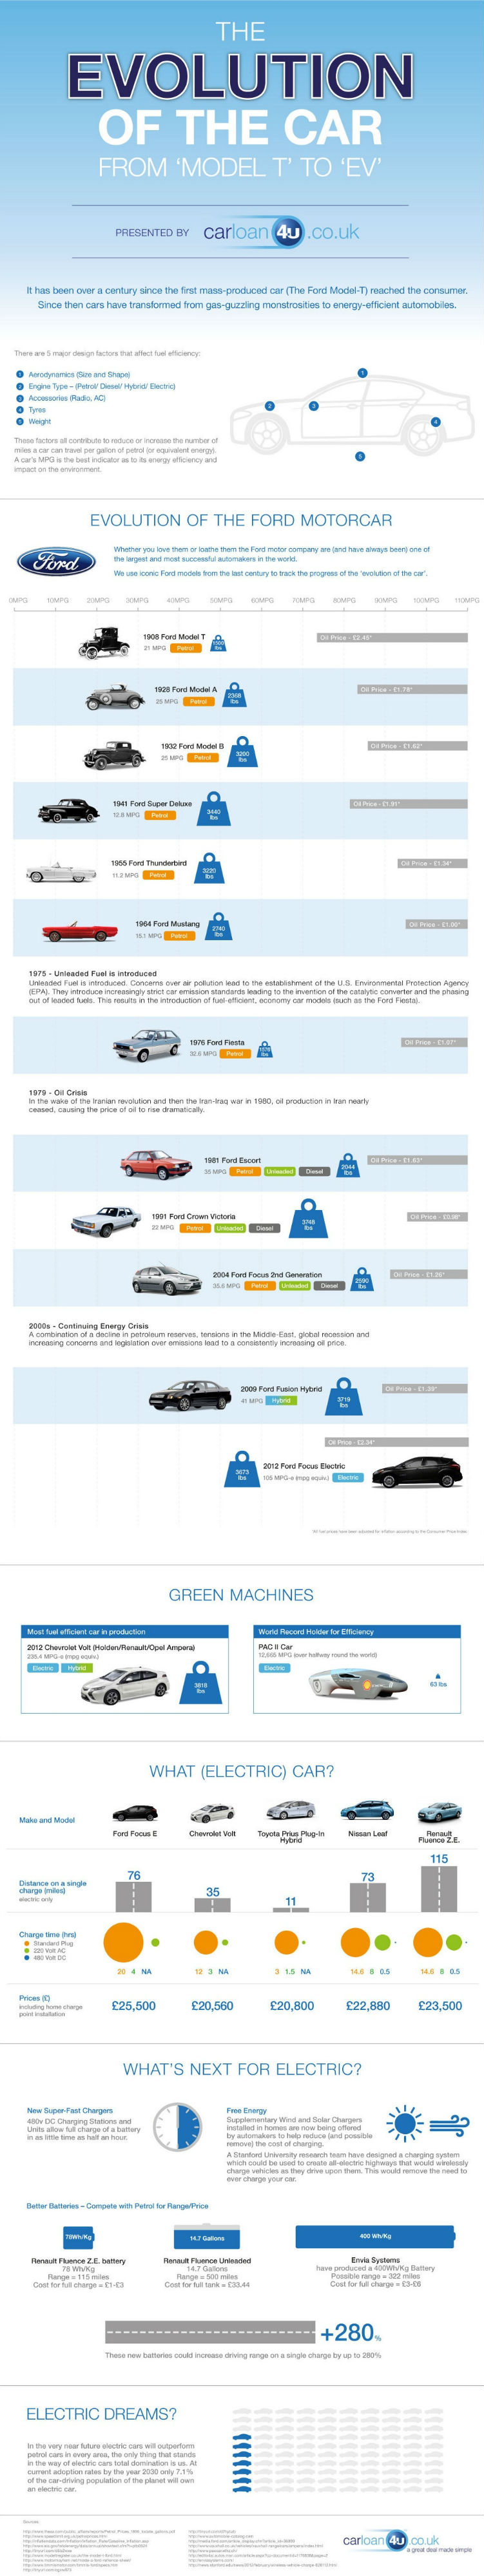 The-Evolution-Of-The-Car-infographic